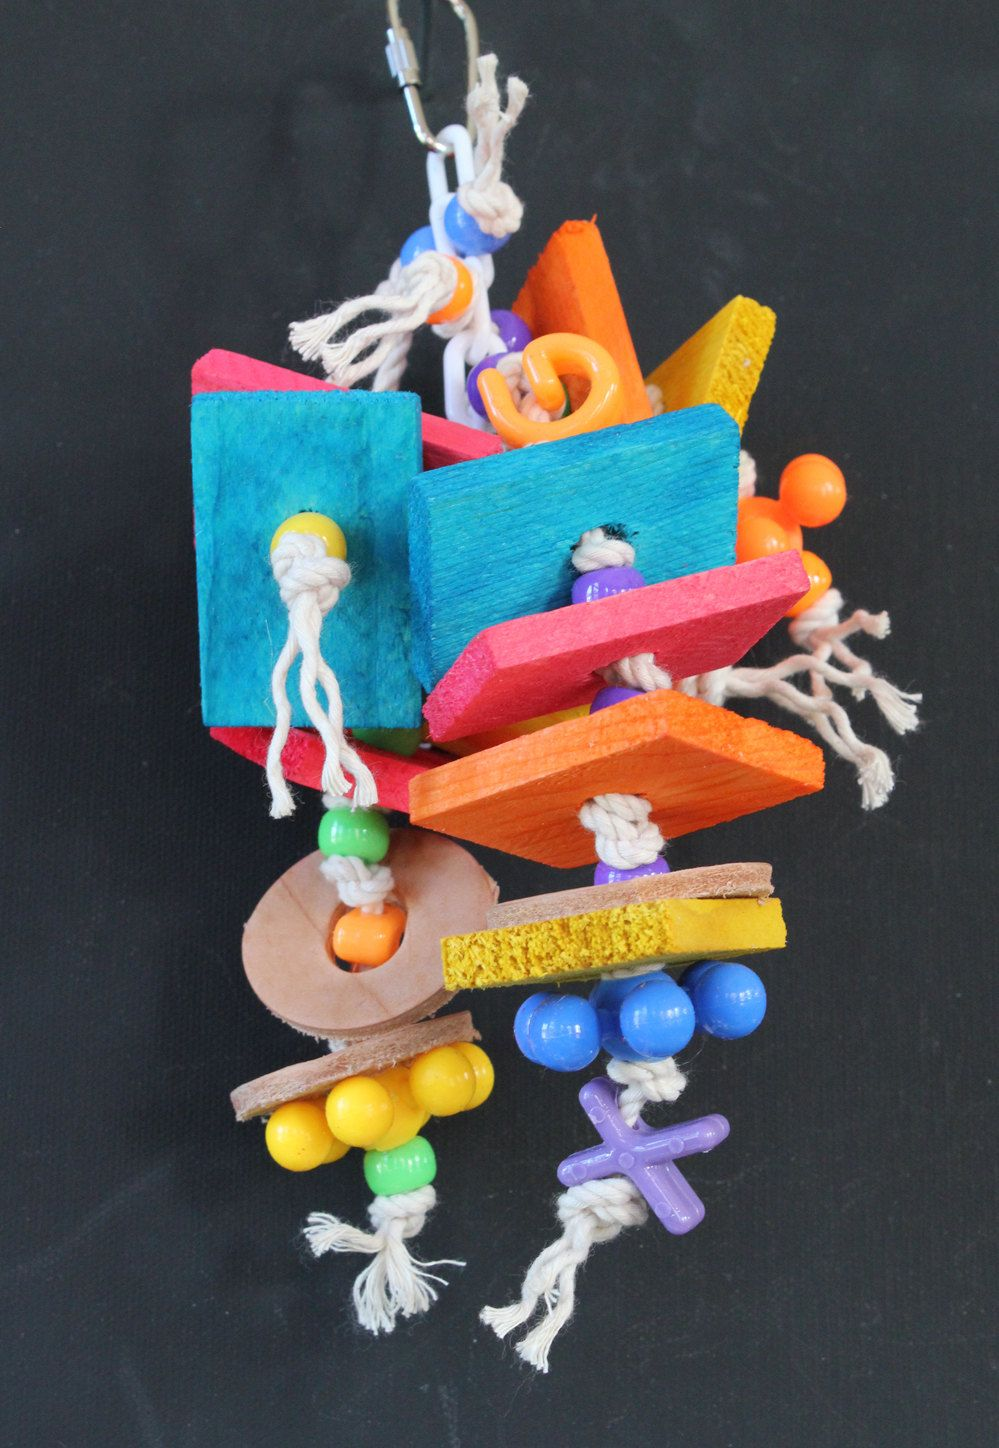 Bird Toy - 12-ch1103 CRAZY TWIN STACKER by ChopmistHillBirdToys on Etsy